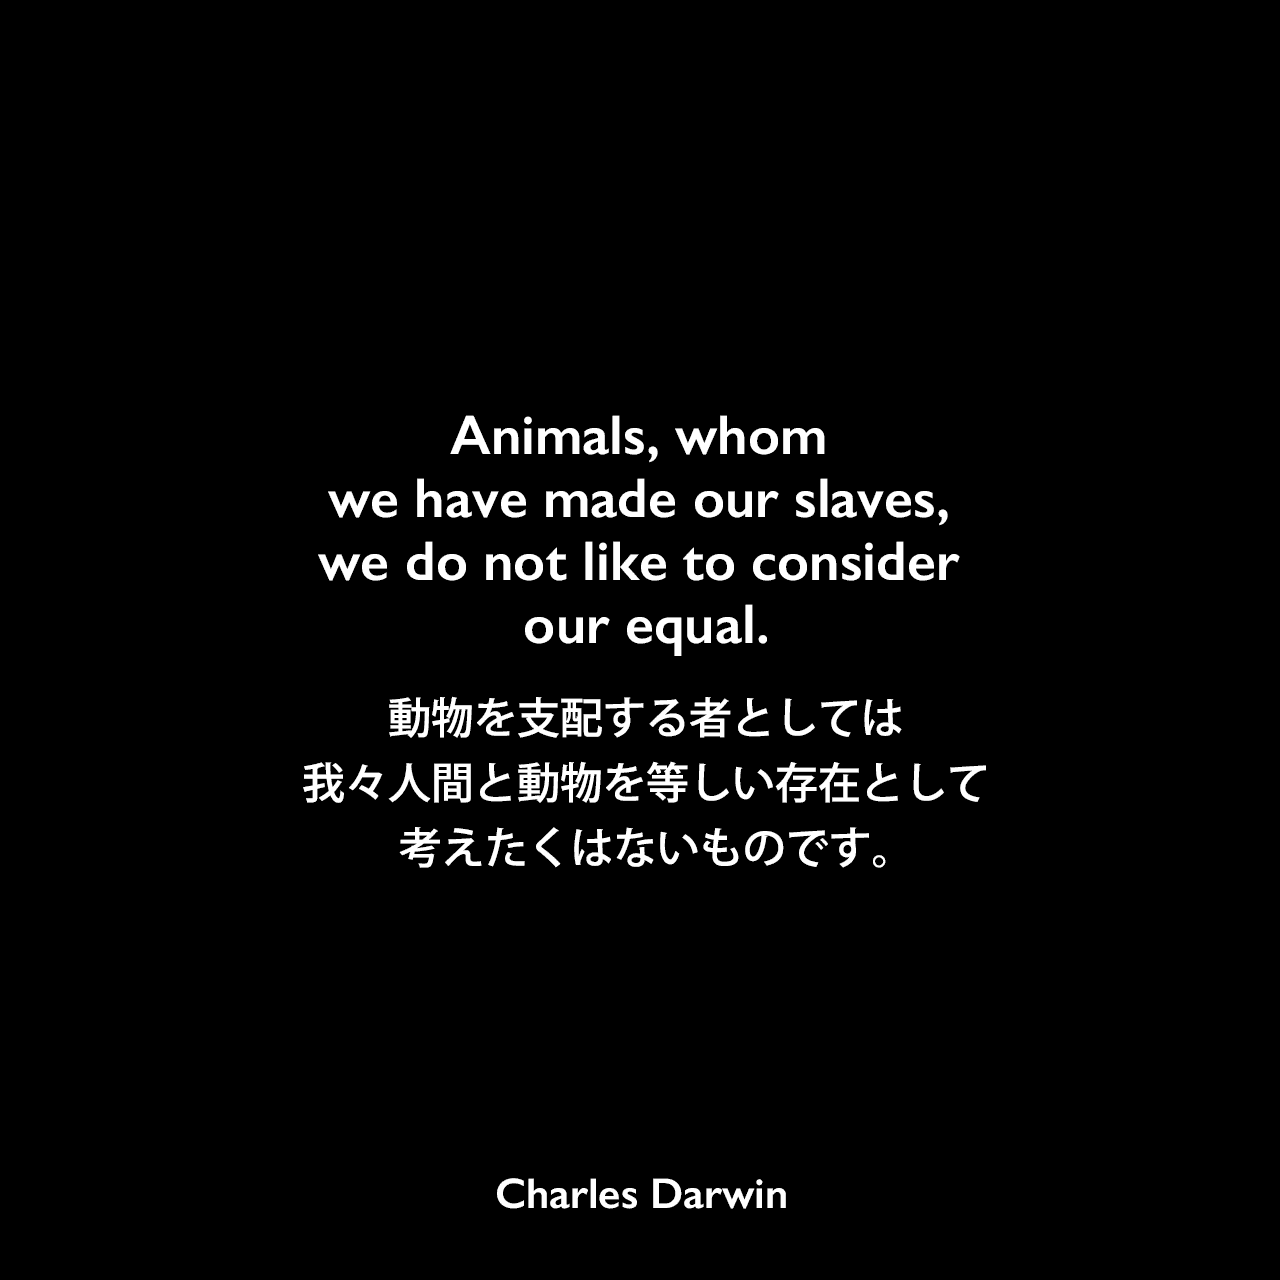 Animals, whom we have made our slaves, we do not like to consider our equal.動物を支配する者としては、我々人間と動物を等しい存在として考えたくはないものです。- ダーウィンのノートよりCharles Darwin